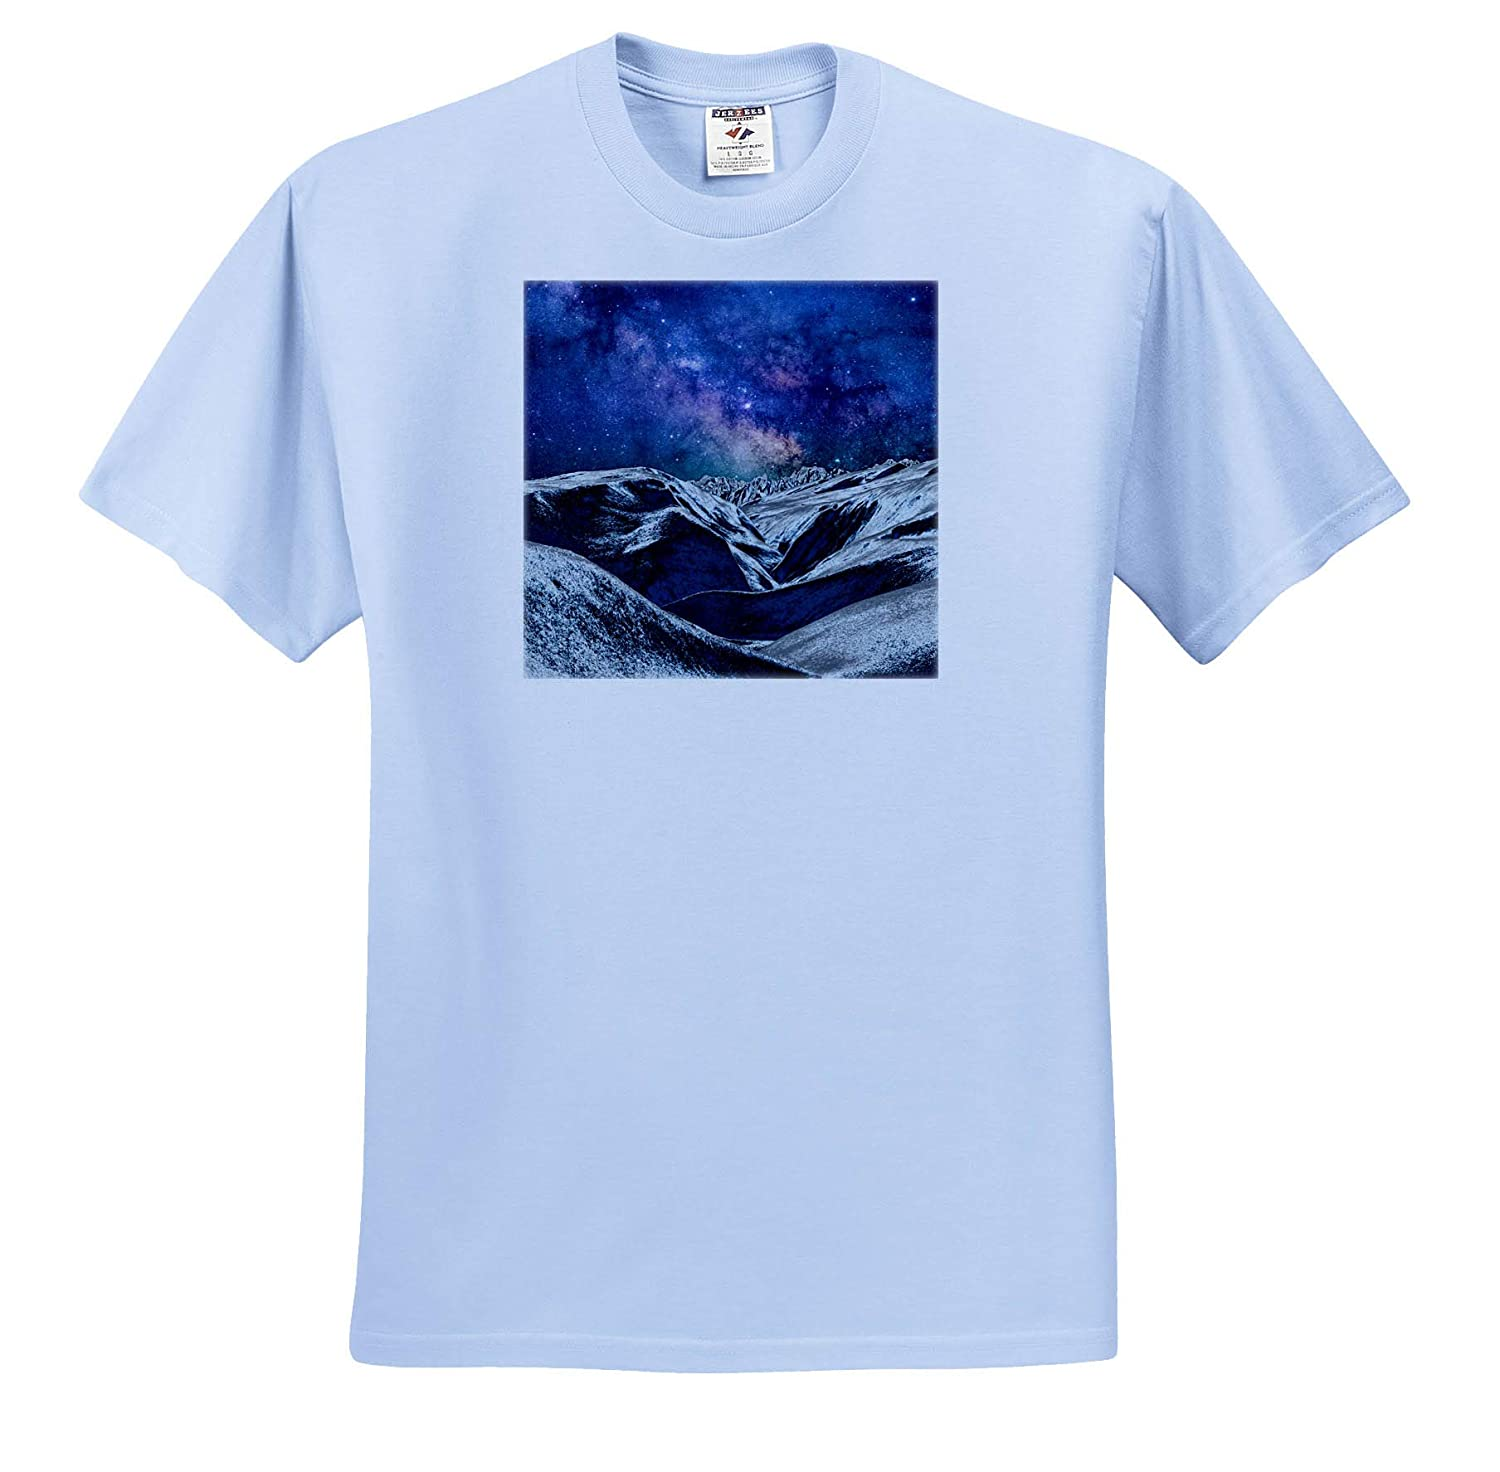 Space 3dRose Perkins Designs T-Shirts Mysterious Science Fiction Landscape of Planet in Space with Many Stars